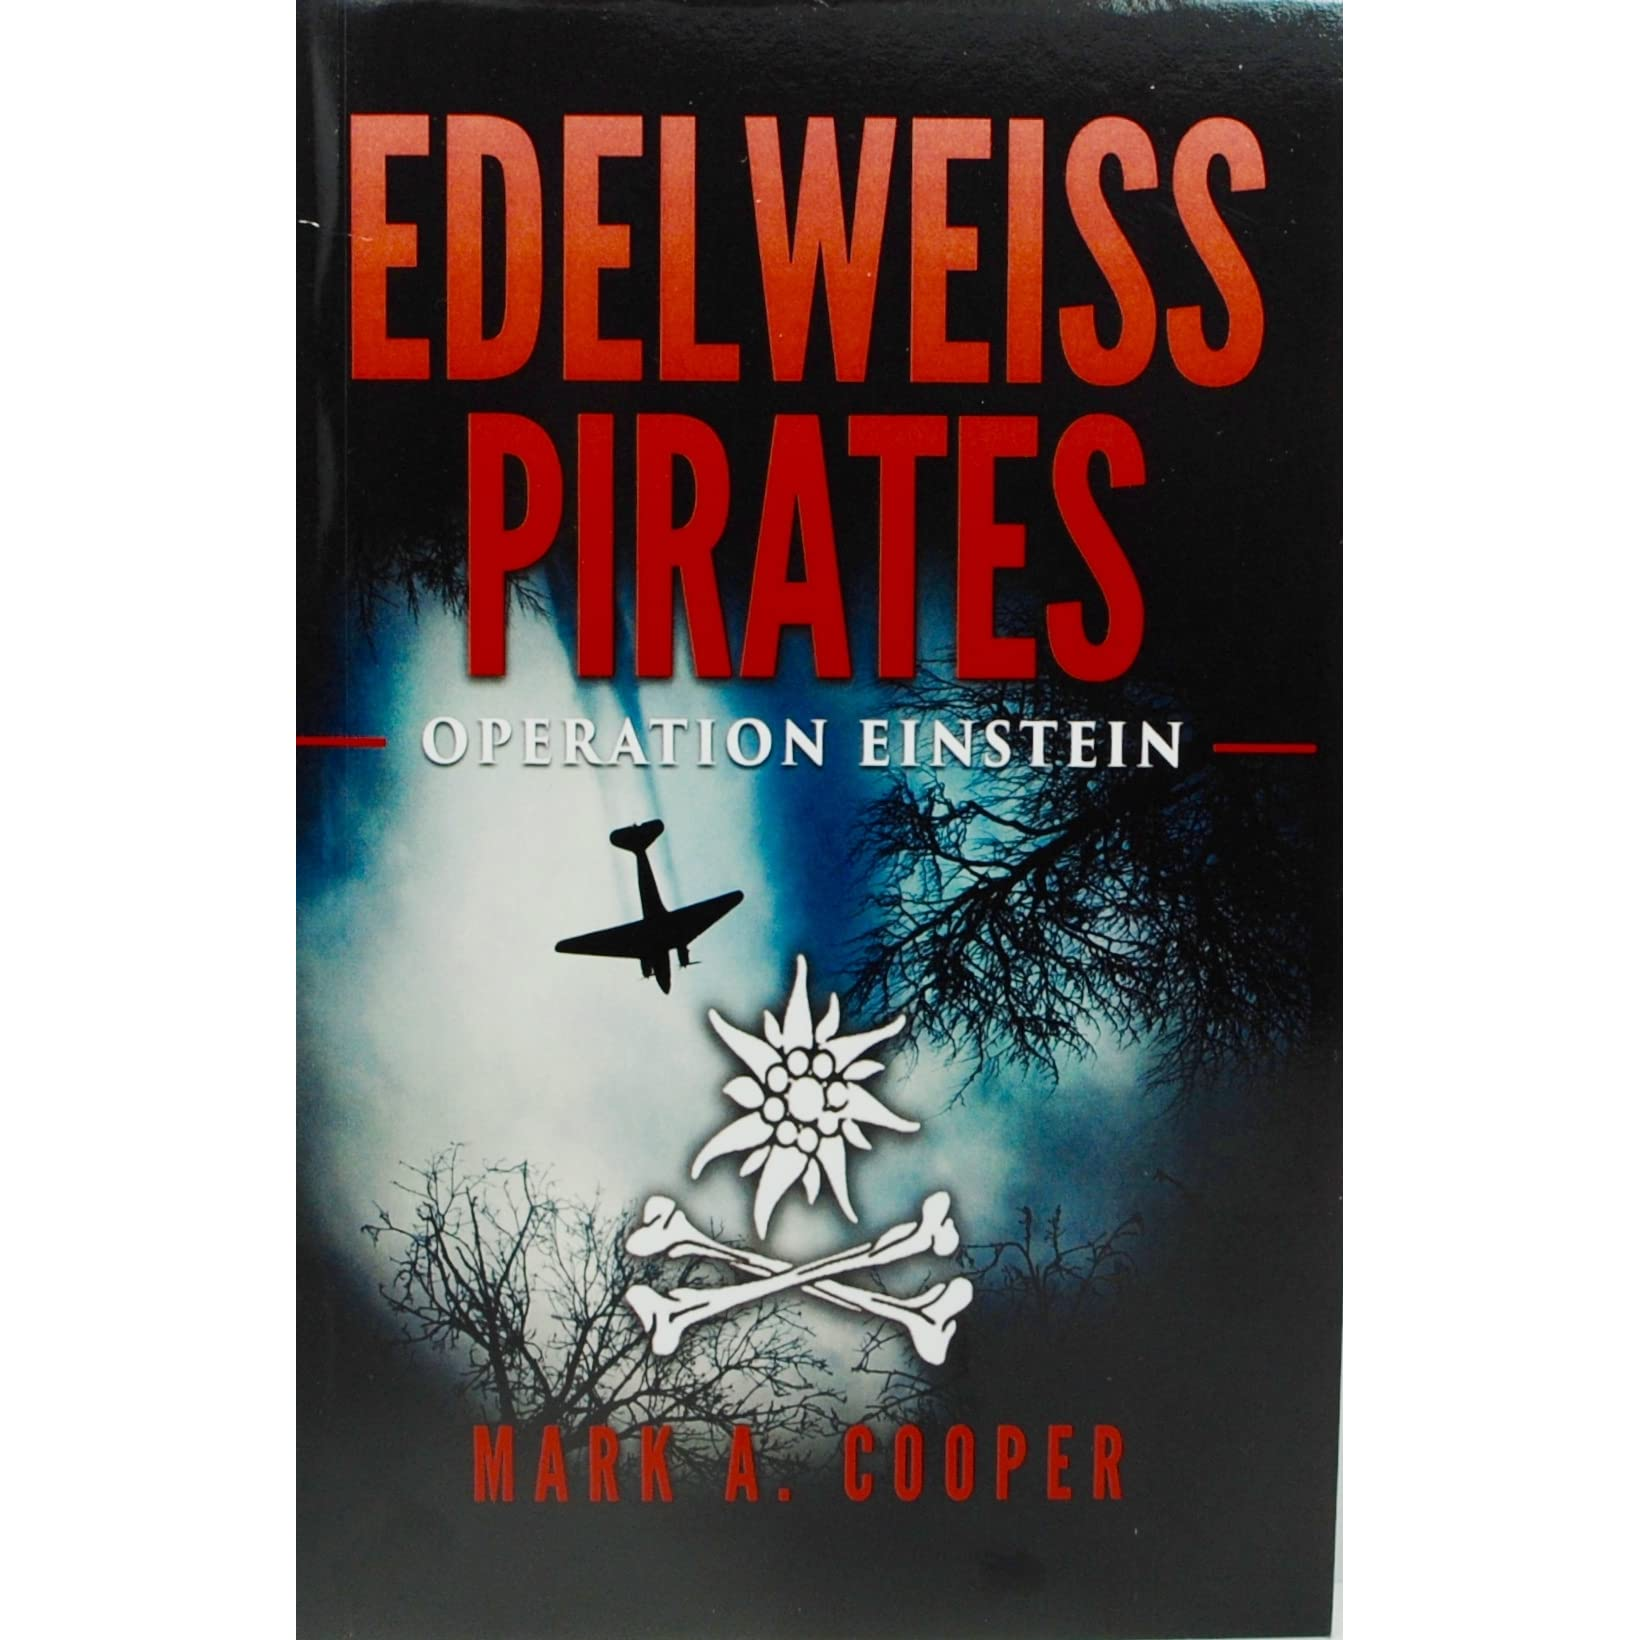 edelweiss pirates 1 operation einstein by mark a cooper edelweiss pirates 1 operation einstein by mark a cooper reviews discussion bookclubs lists